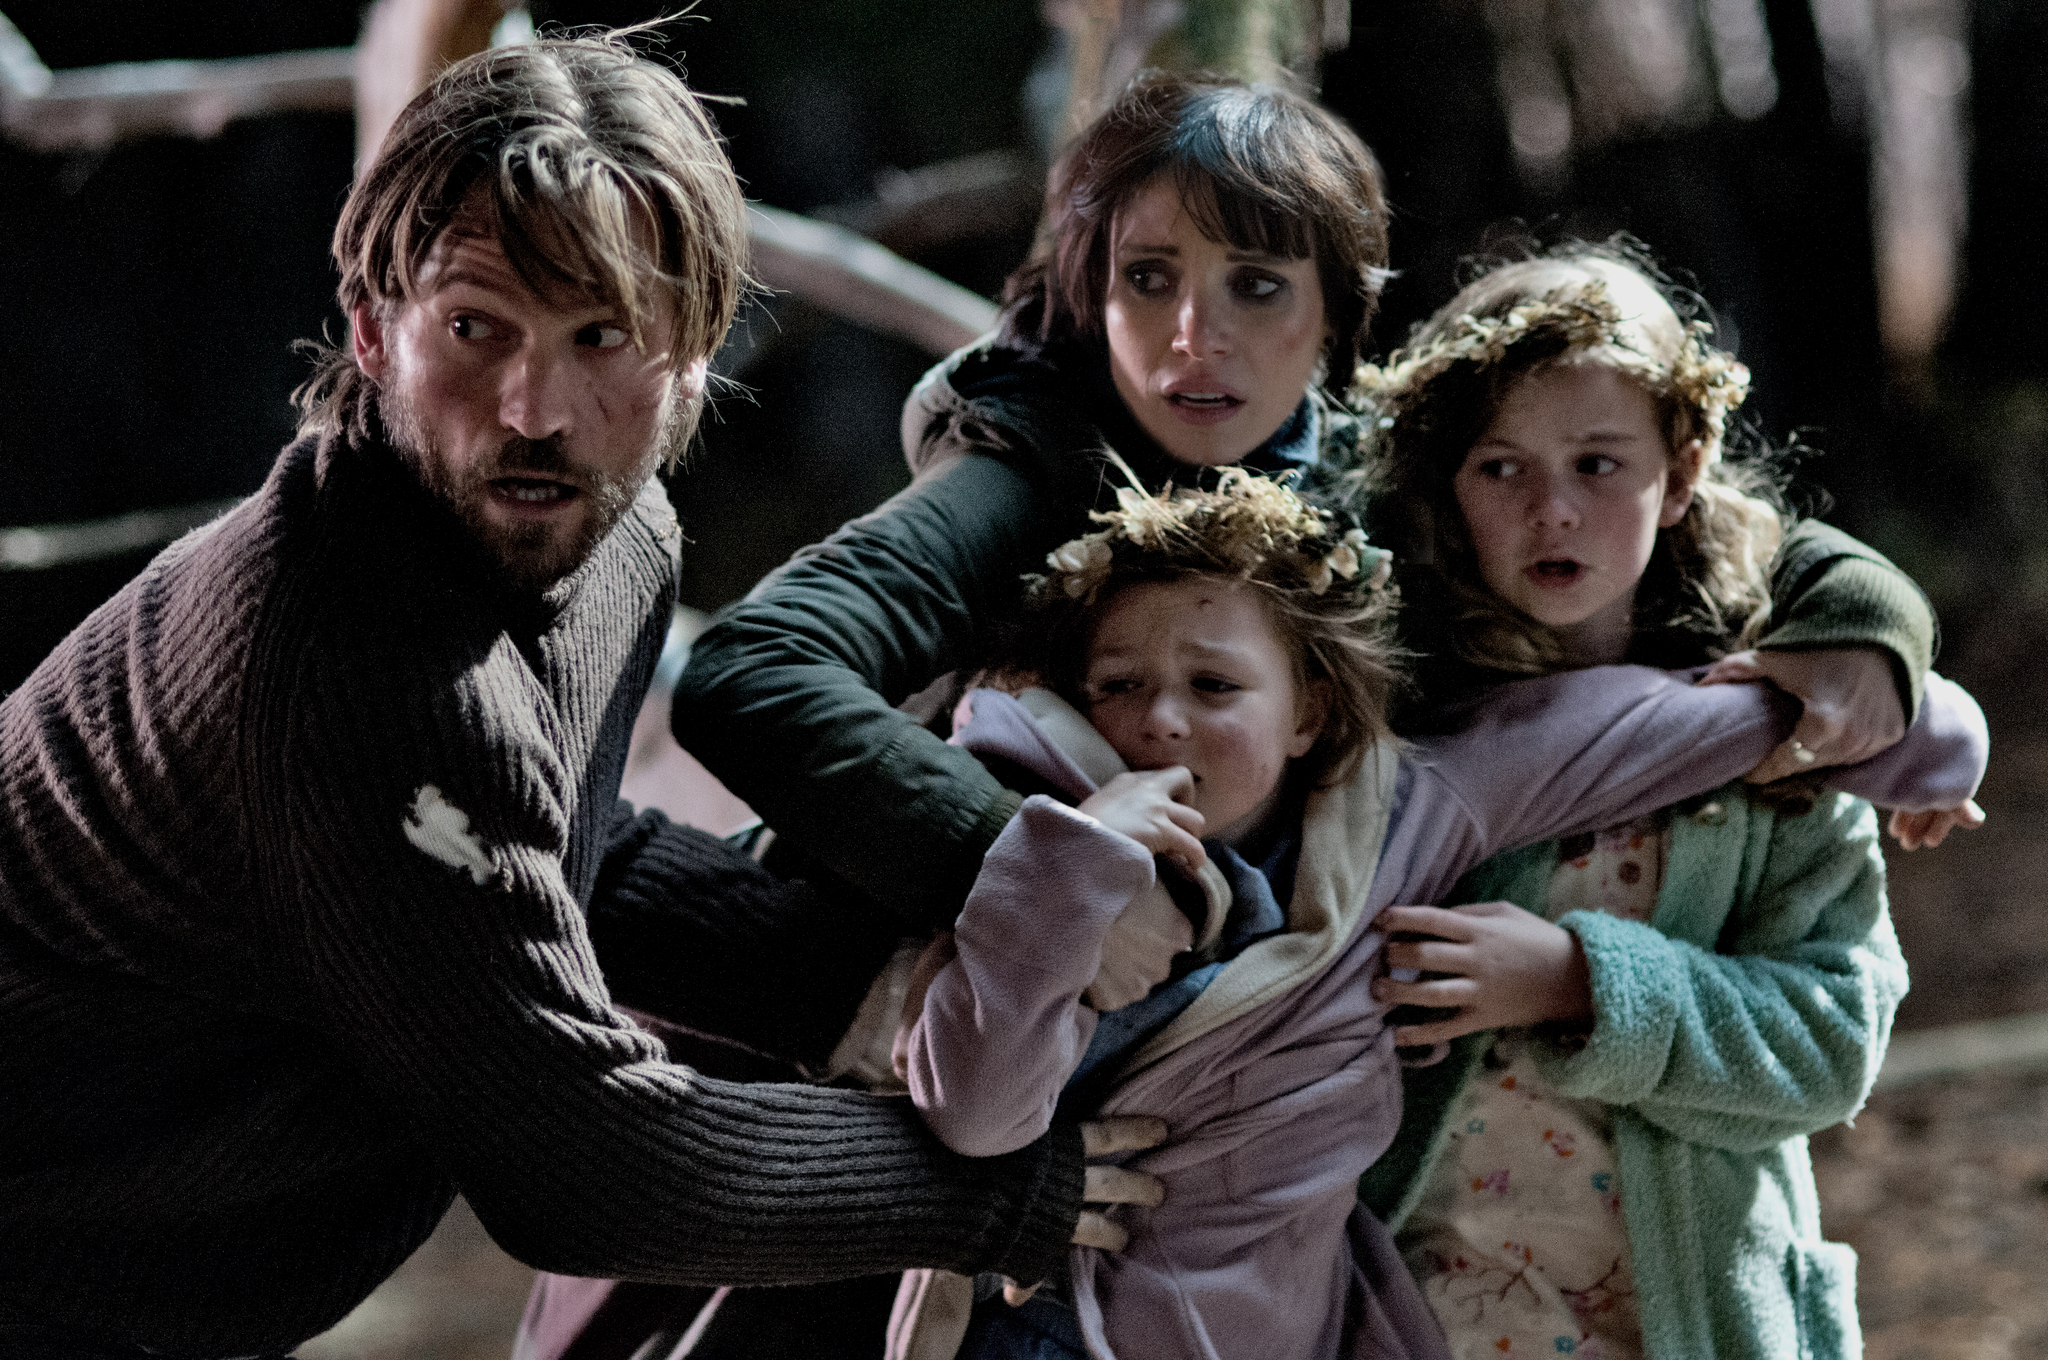 Nikolaj Coster-Waldau, Jessica Chastain, Megan Charpentier, and Isabelle Nélisse in Mama (2013)